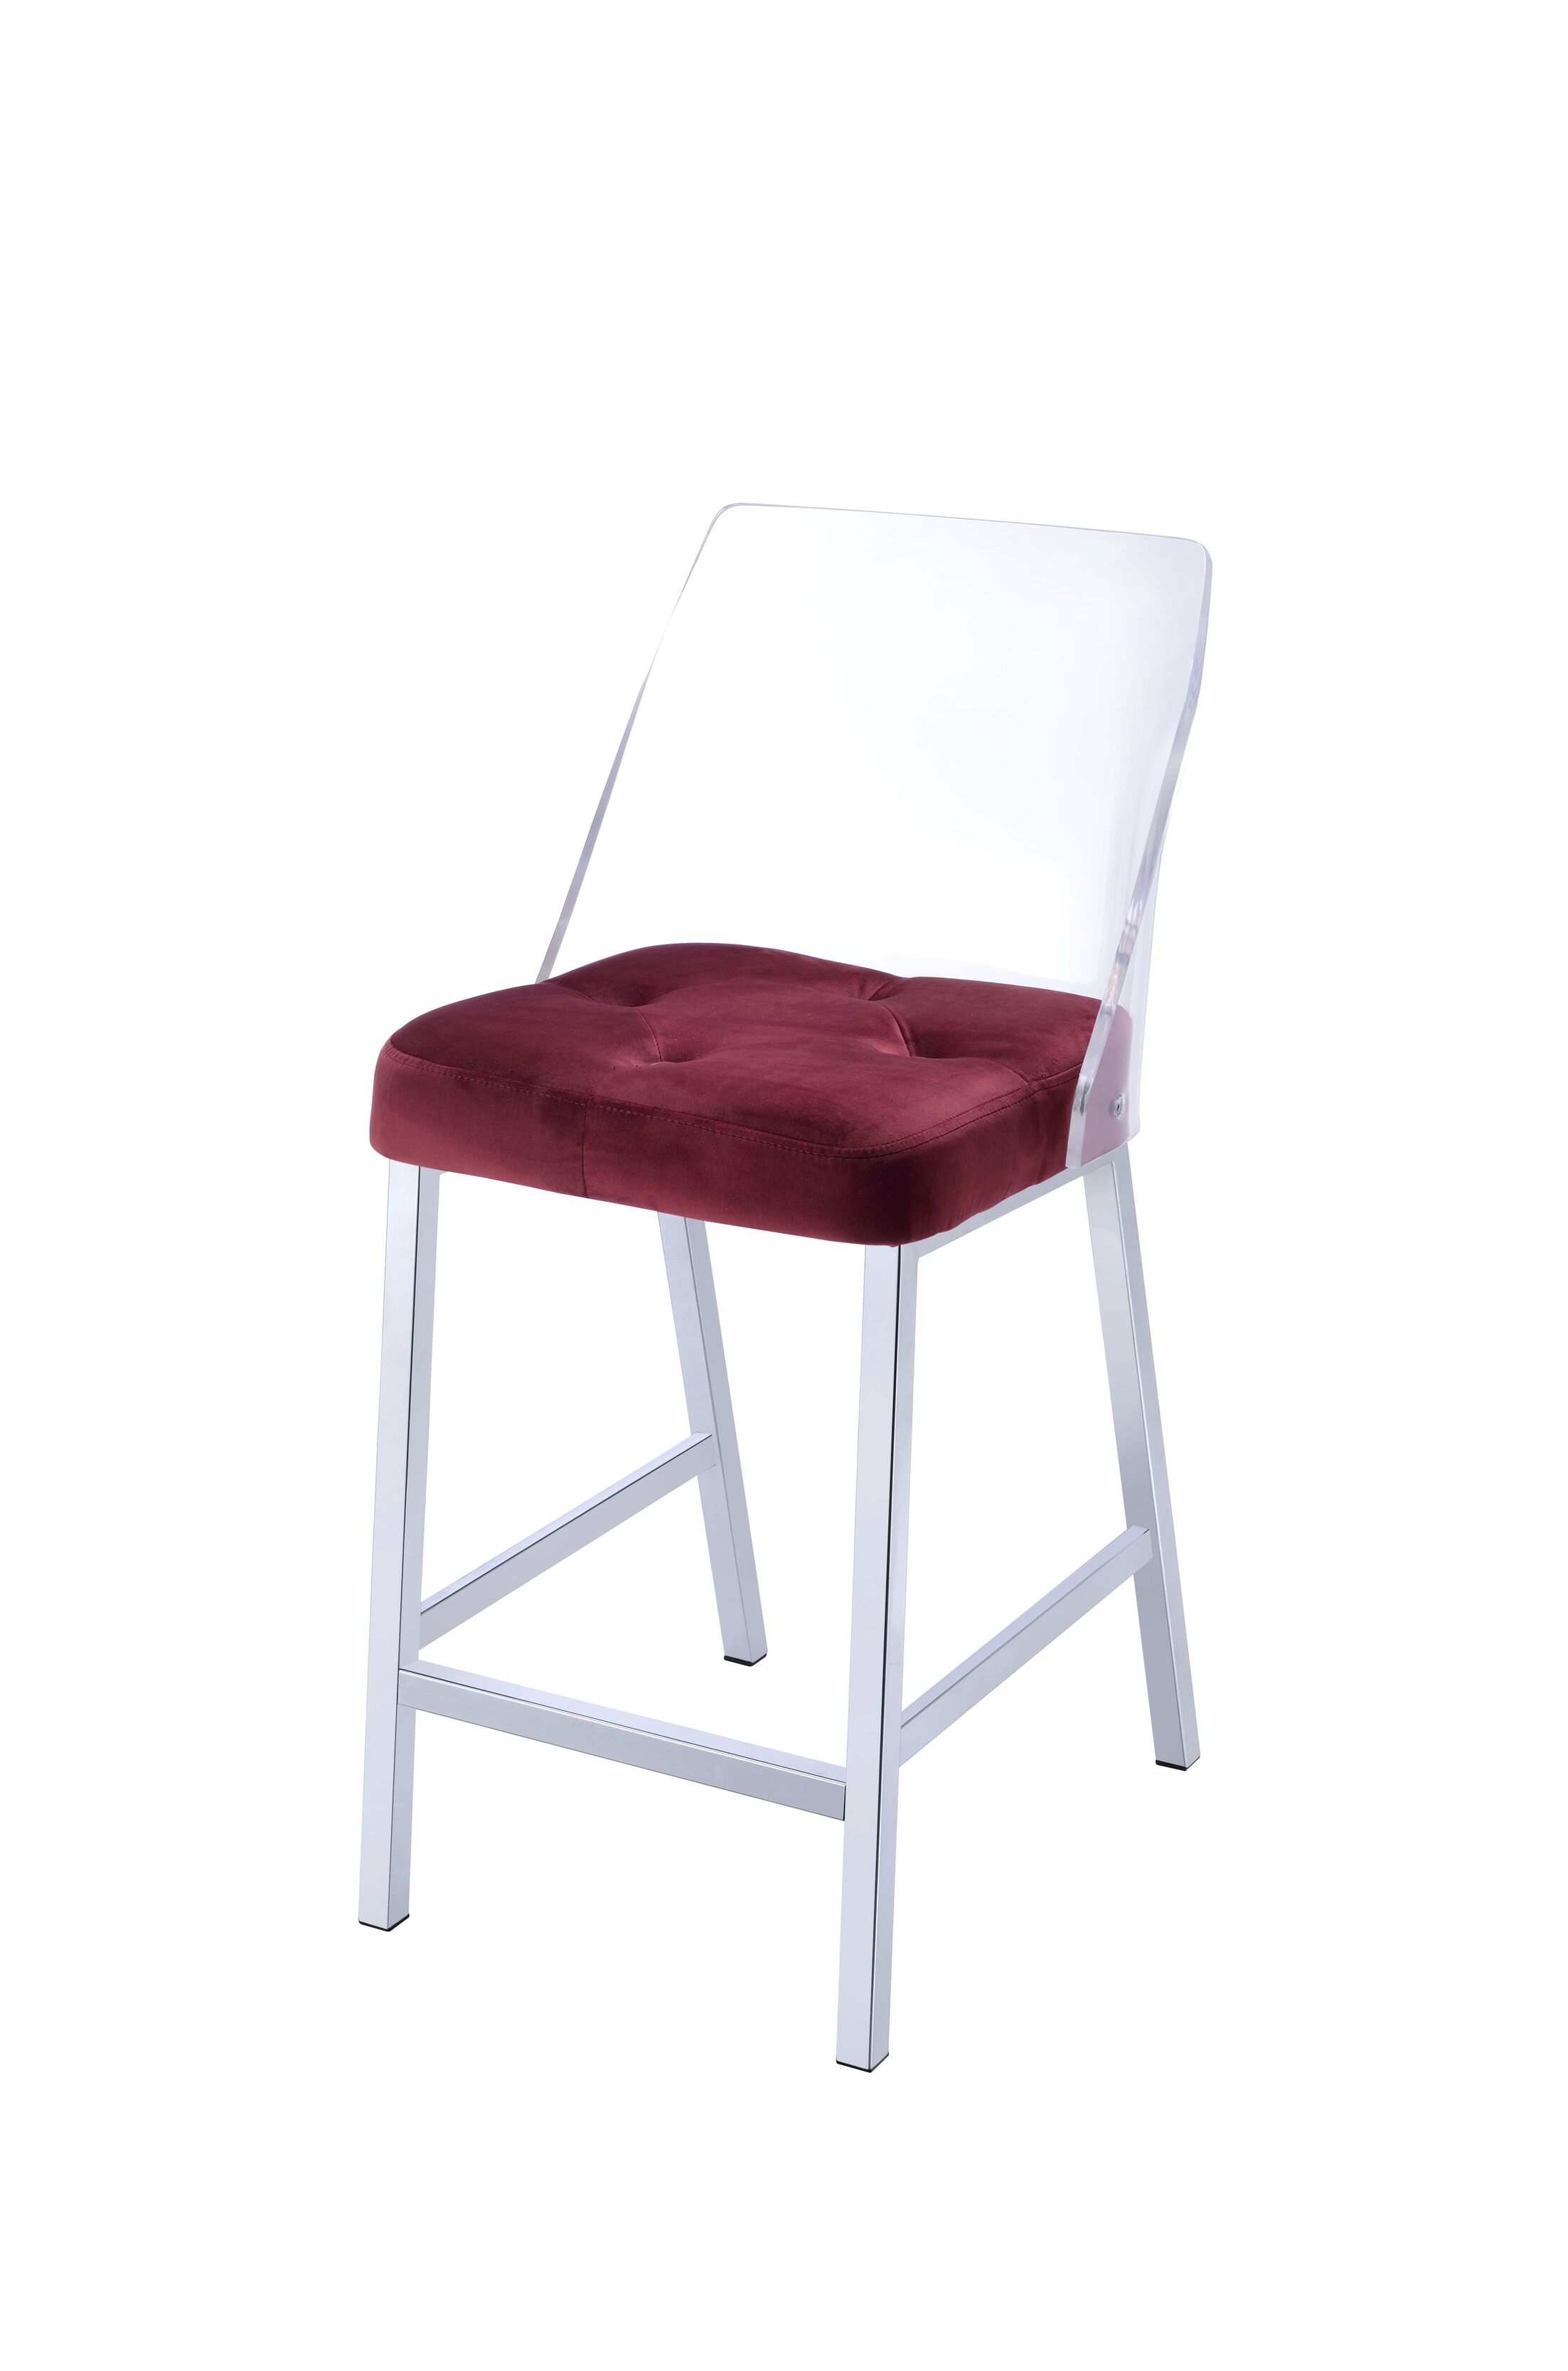 Langhorne Counter Height Upholstered Dining Chair Upholstery Color: Burgundy